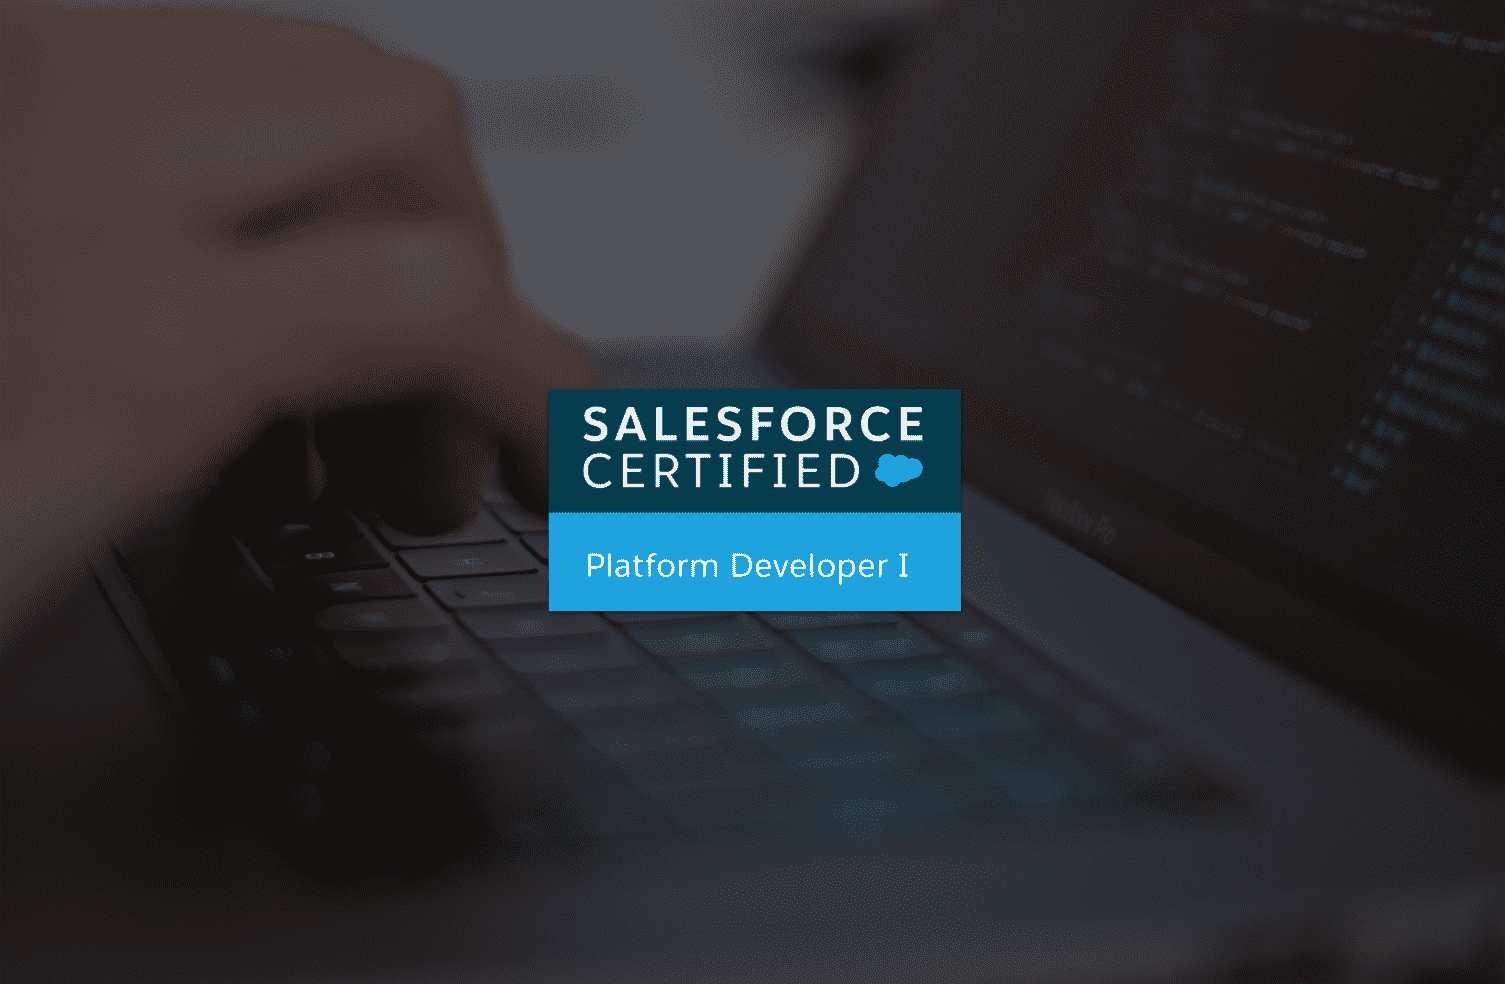 Salesforce Platform Developer I Certification